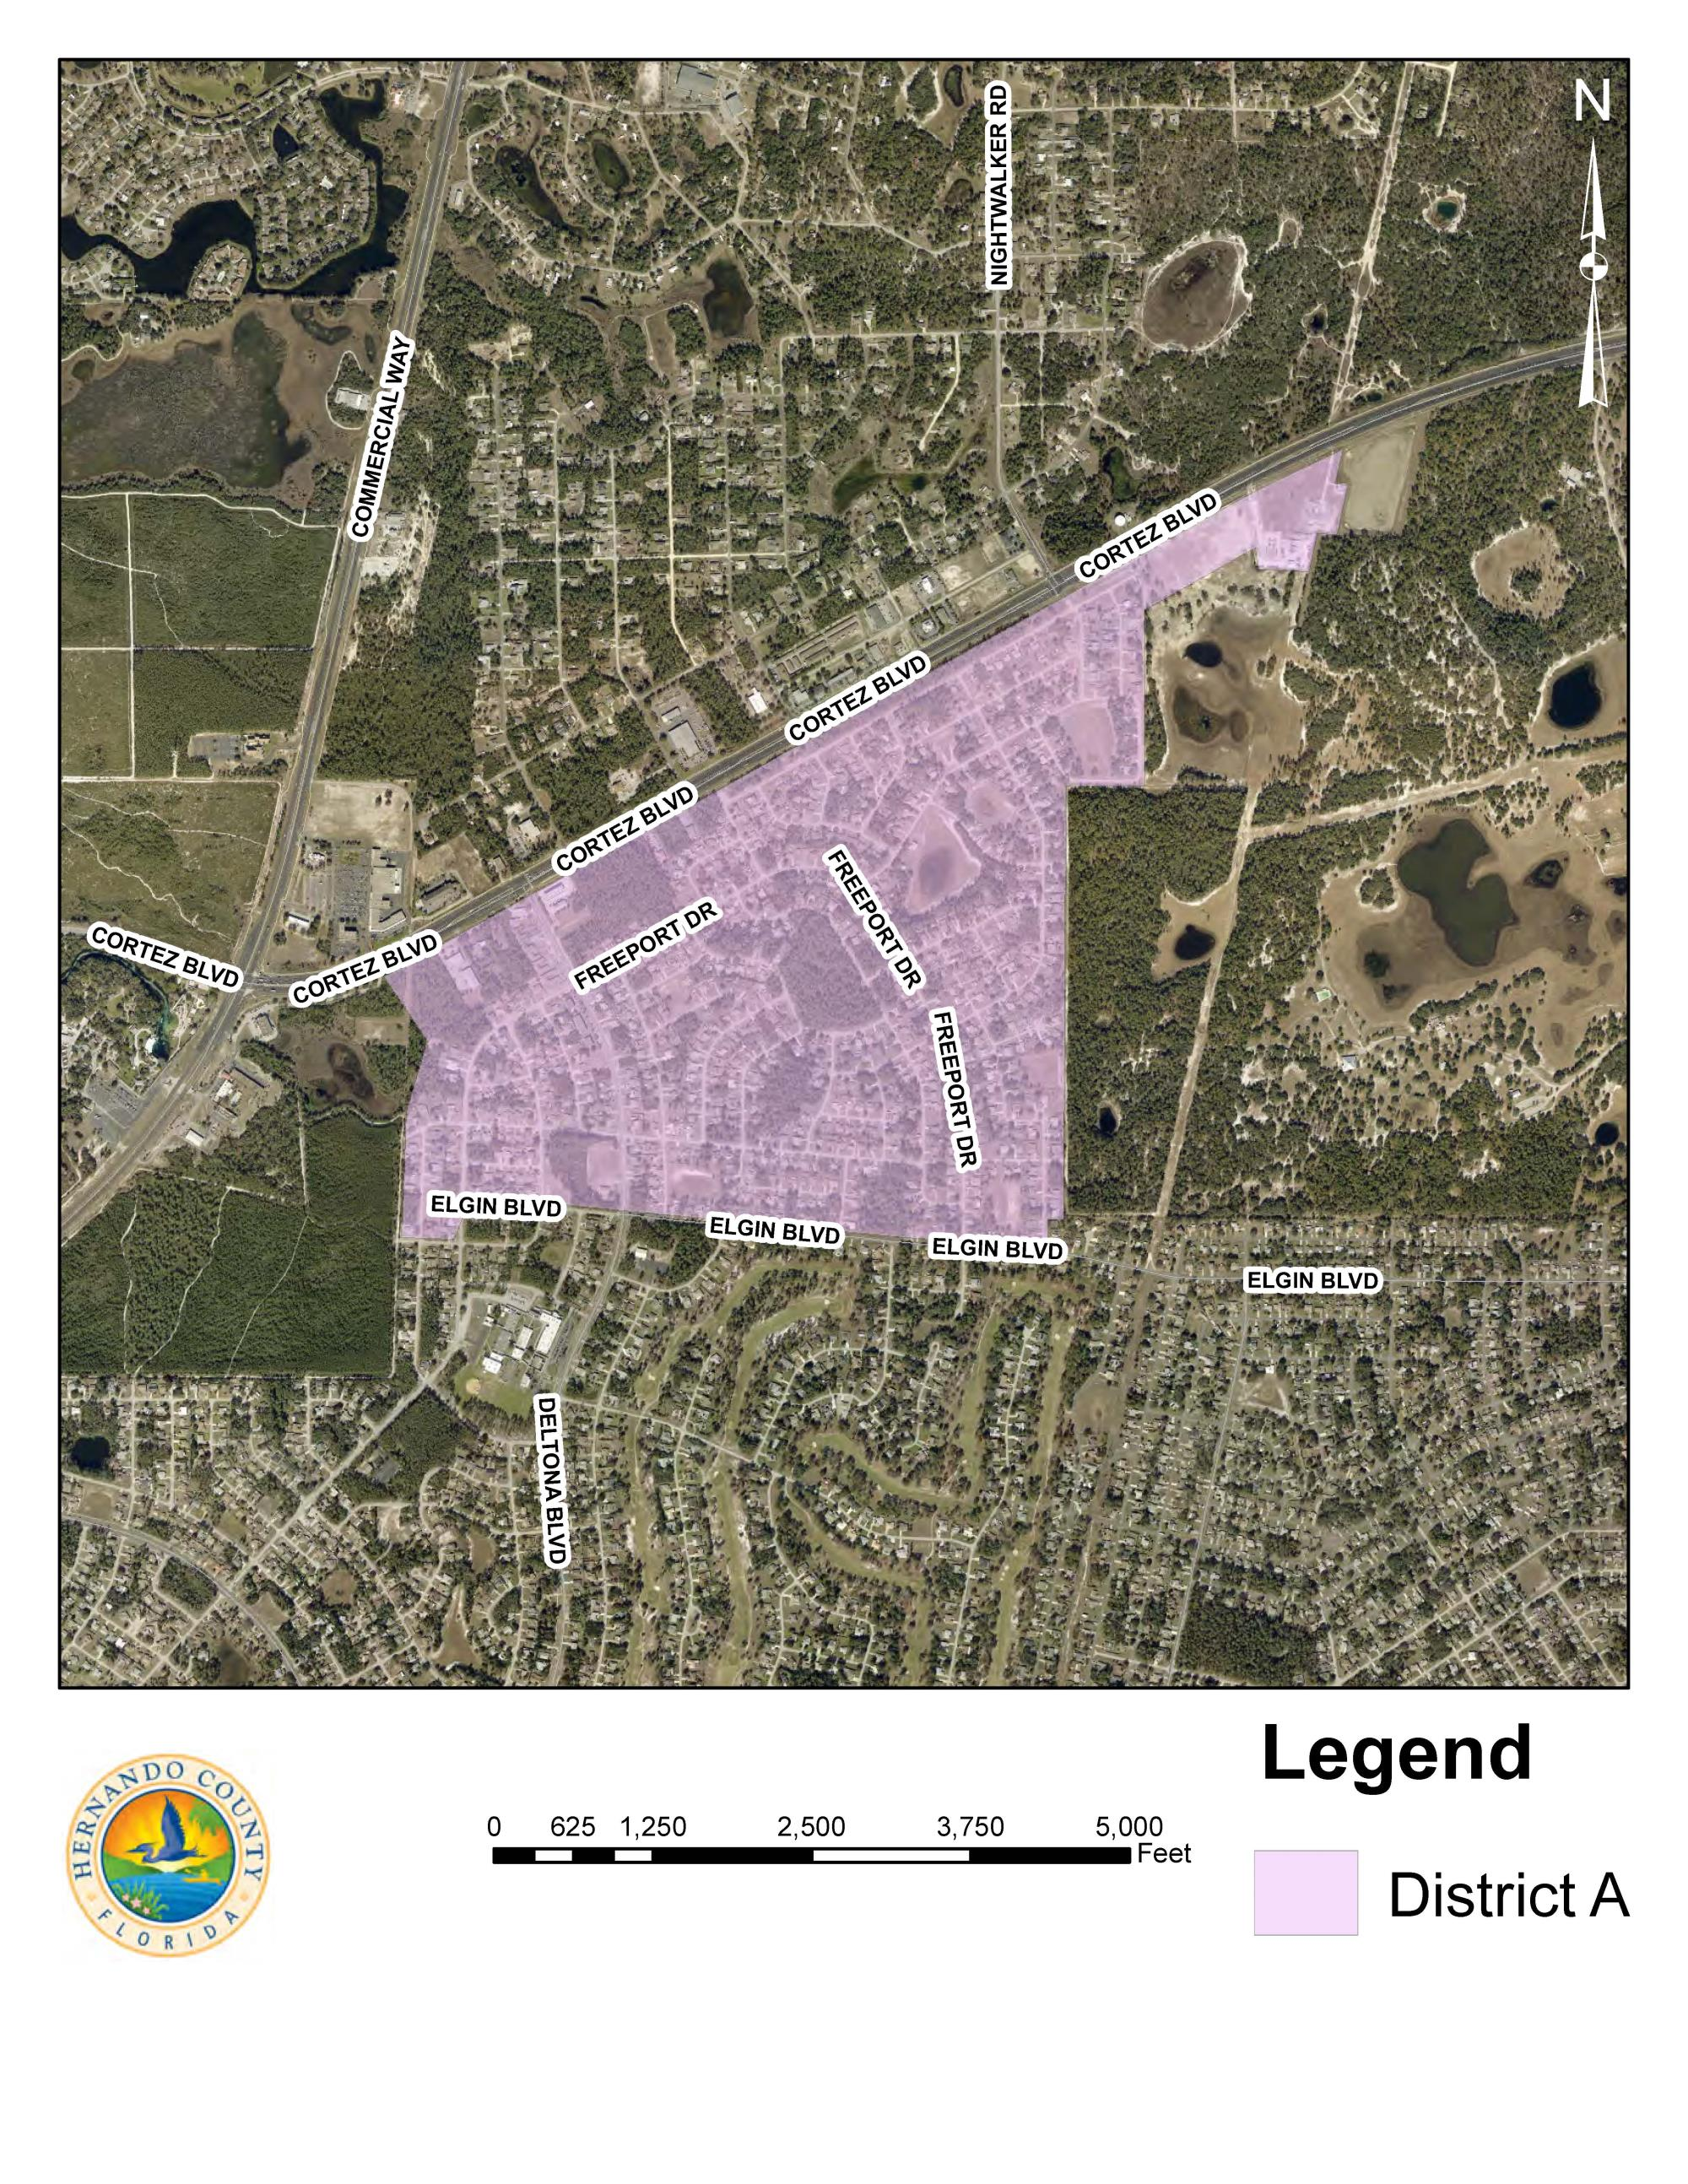 The general boundary area of Septic to Sewer Project is:  North Border:  Hwy 50 (west of the Sandhill Scout Reservation) South Border: Elgin Blvd. (west of Nardello Ave) Rd. East Border:   Nardello Ave, India Dr. Hazelwood Rd (to Brentlawn St/Hwy 50) West Border: Lyon Rd, west of Elgin and Moongate north of Lyon rd